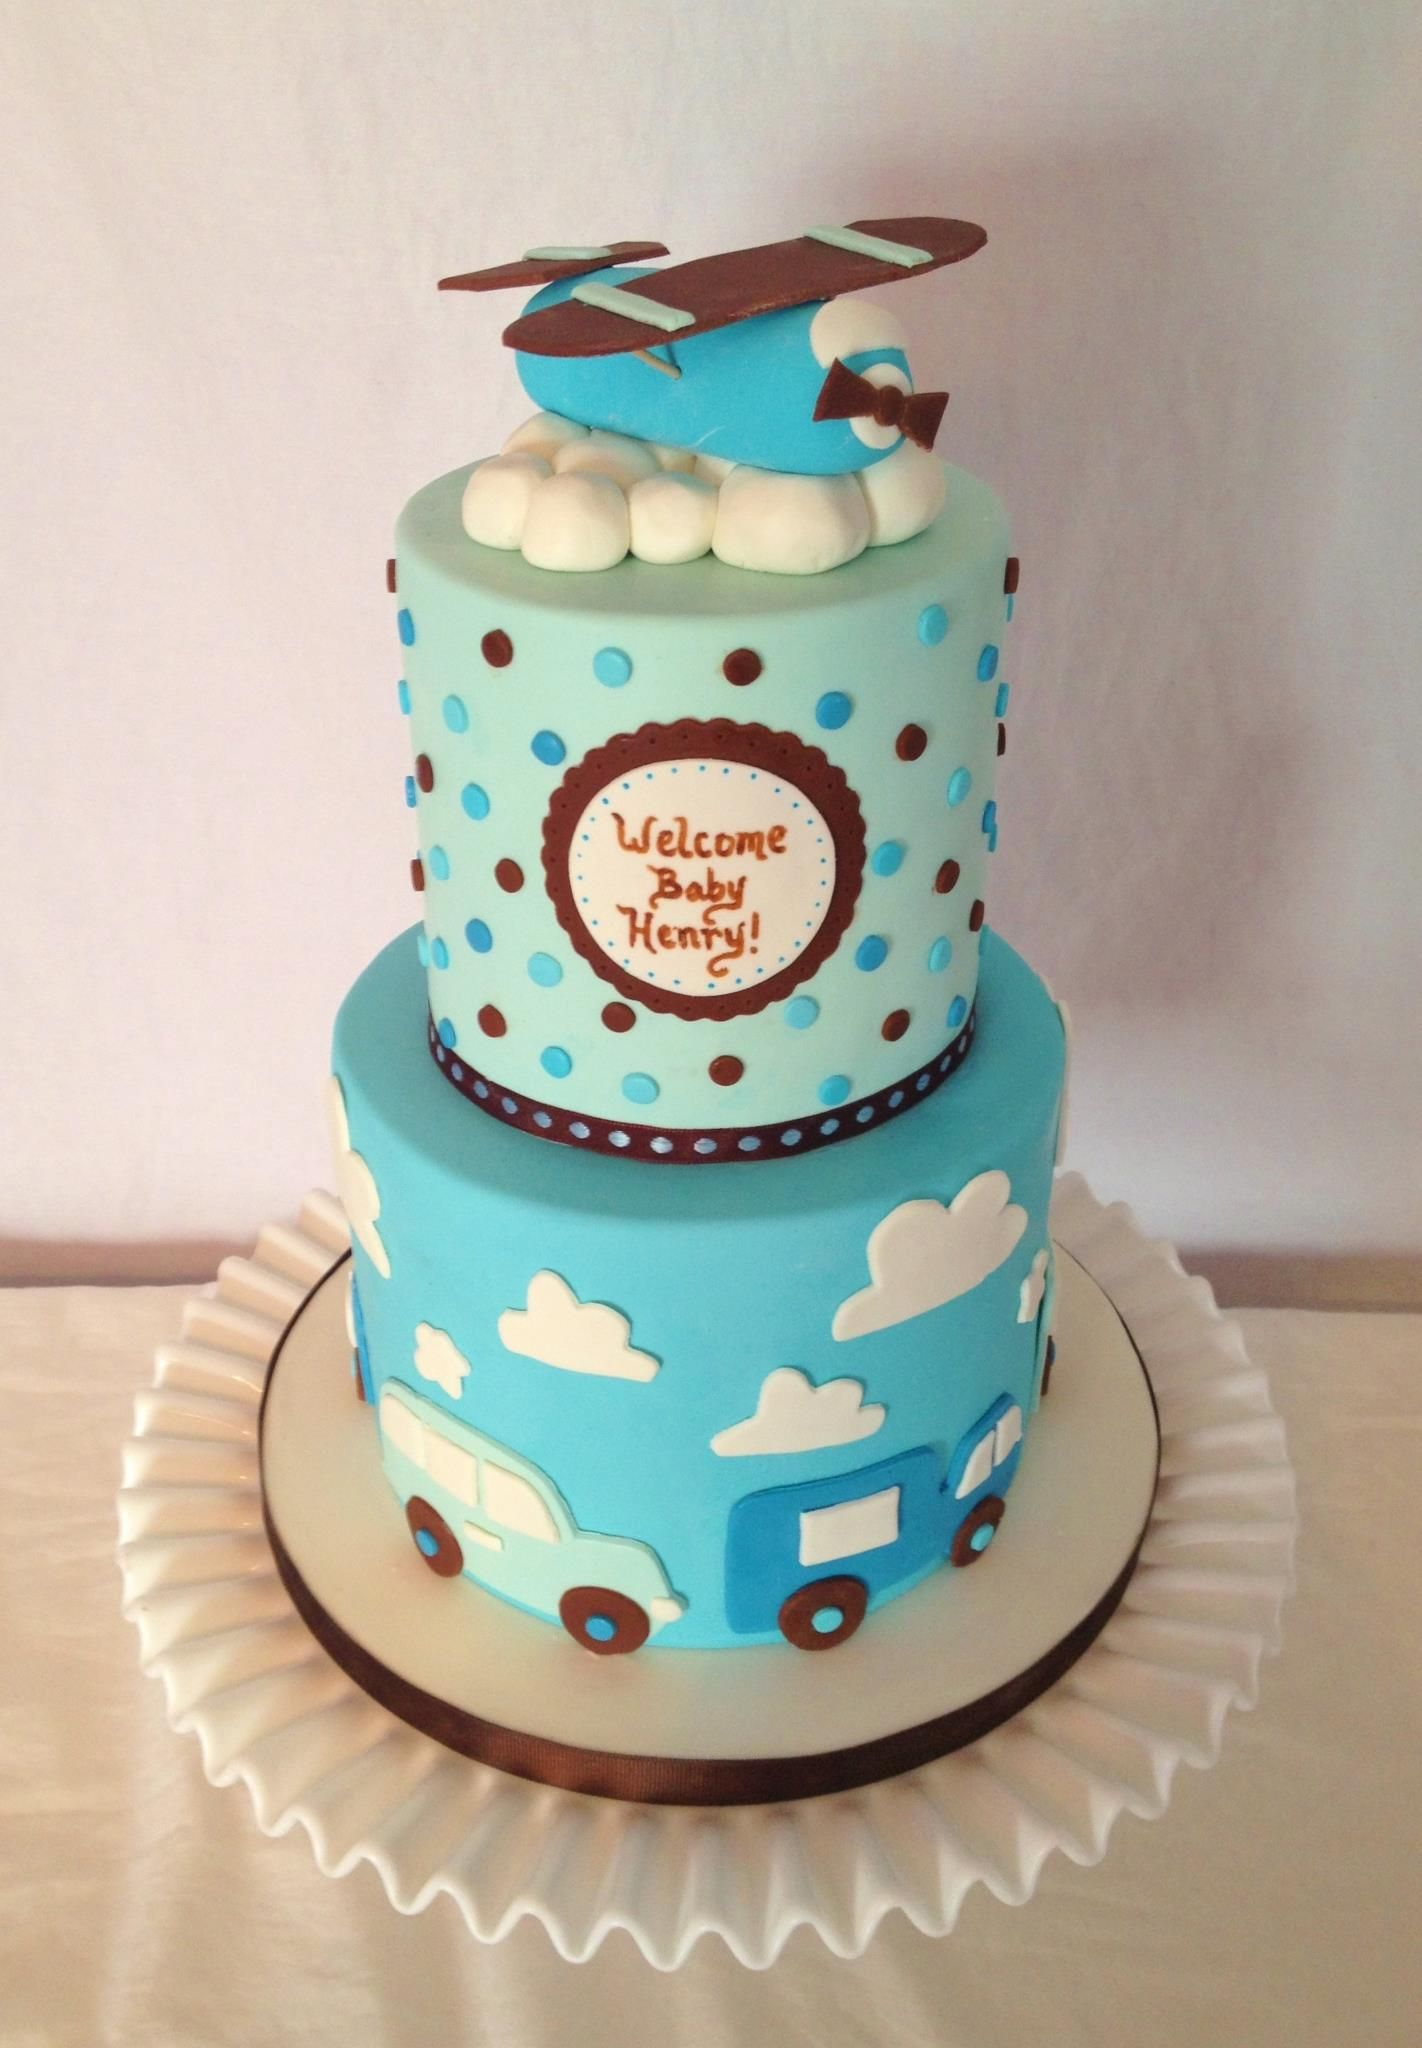 Plane cake Carolines Cakery Facebook page Baby shower